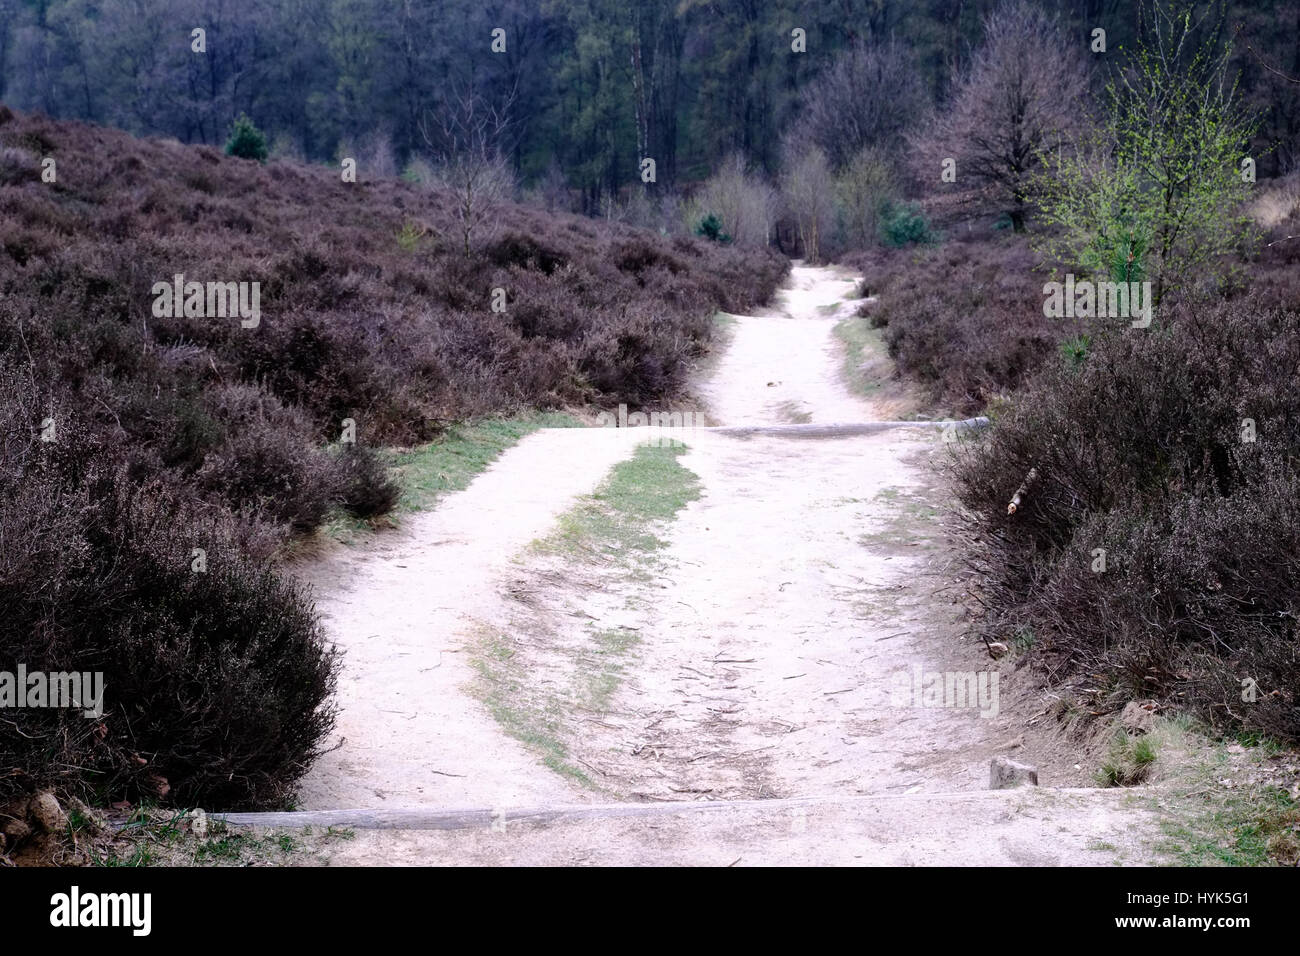 Heath and path at the Posbank in Rheden, National park Veluwe, Netherlands. Stock Photo